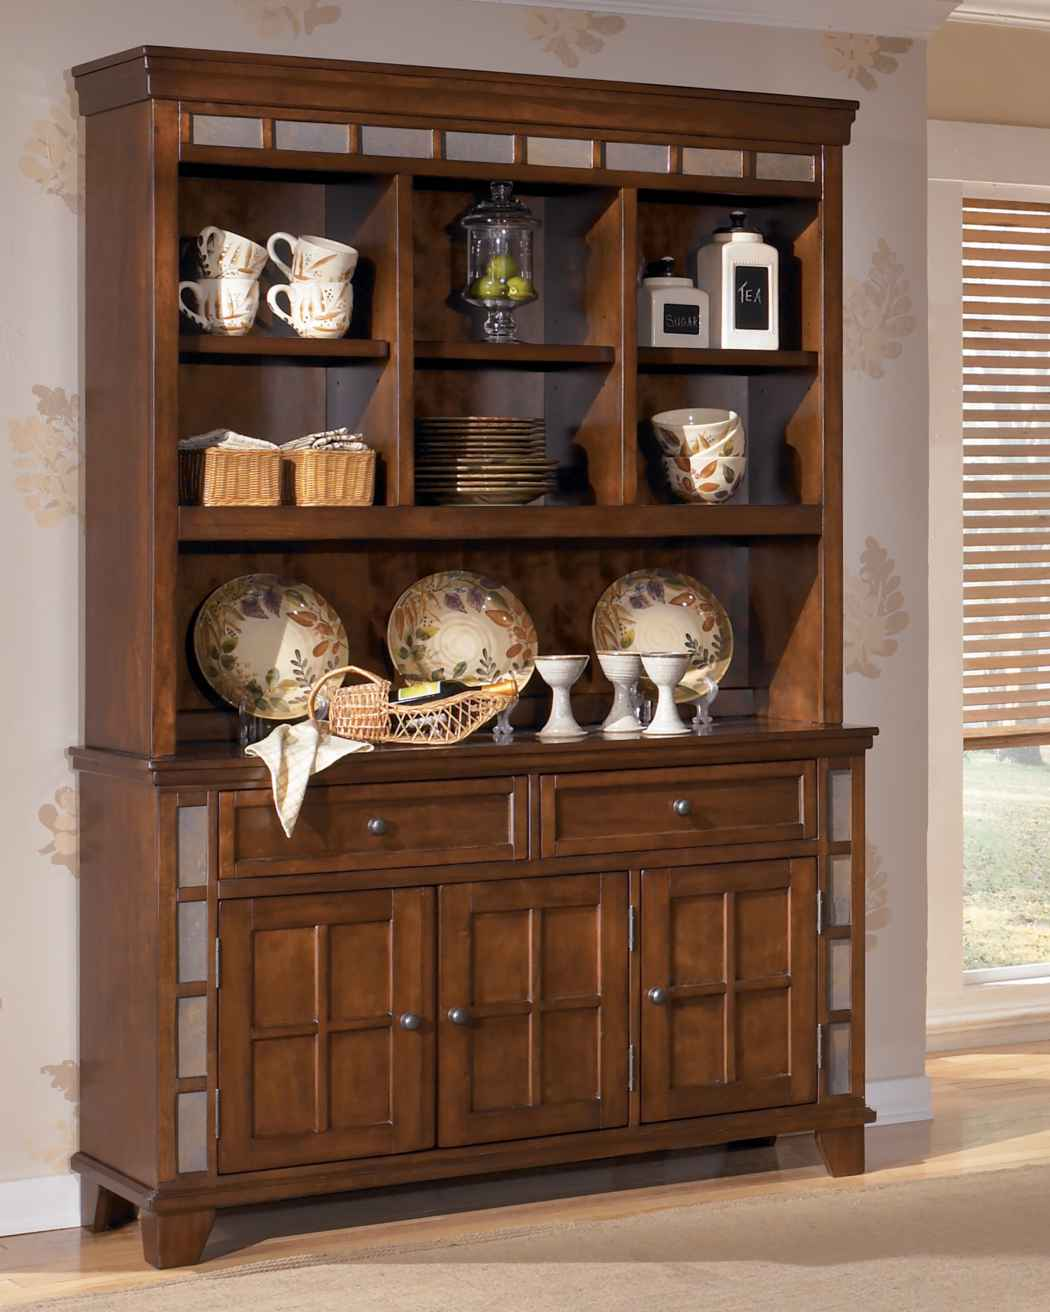 dining hutch luxury dining room hutch and buffet 34 for cabinet design ideas with dining BBXHARK